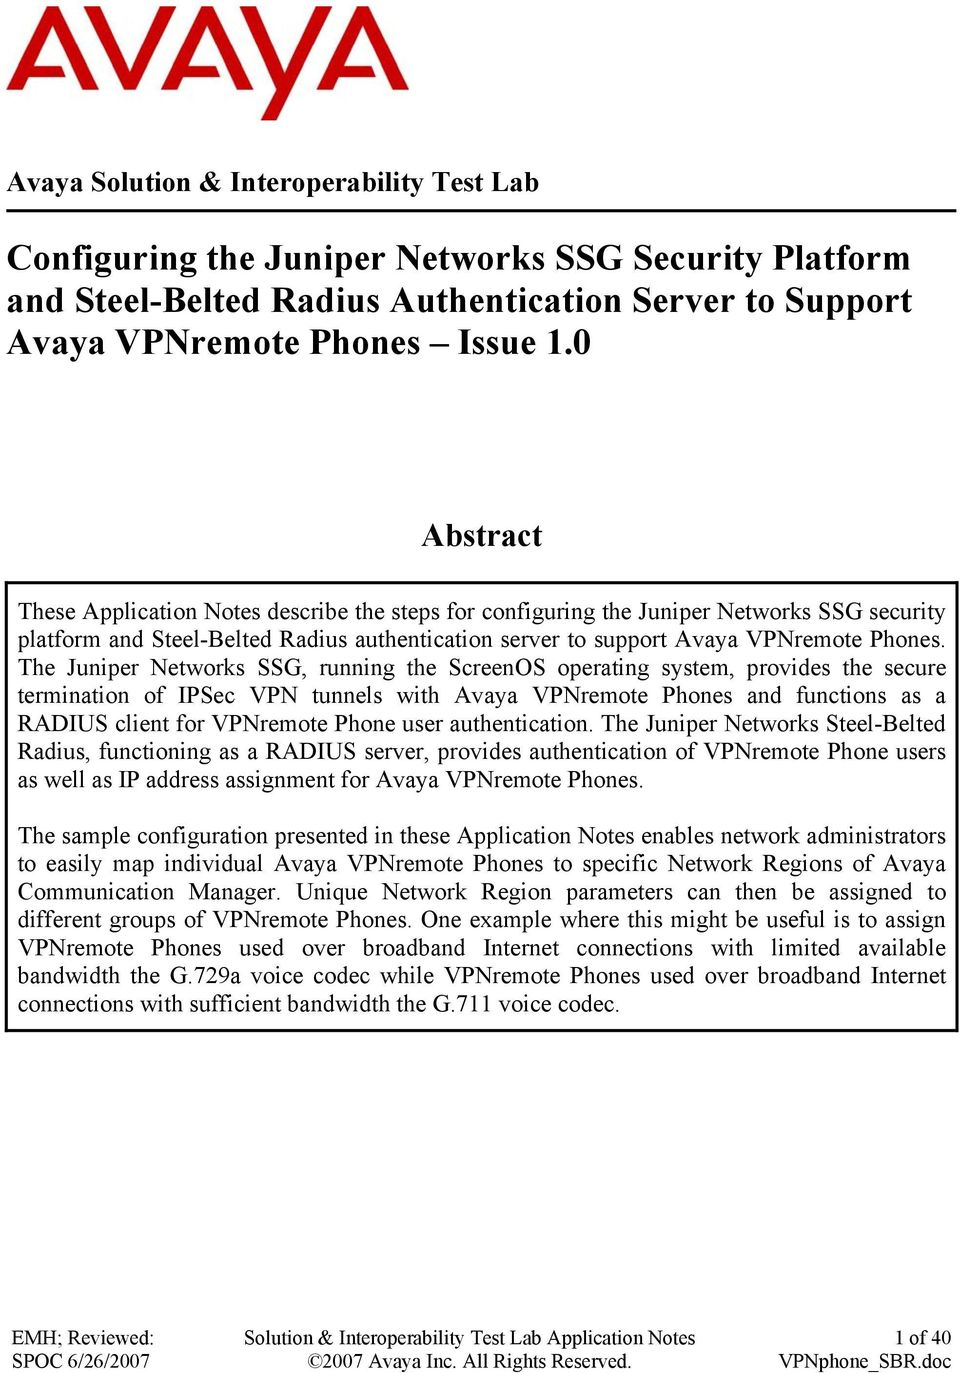 Configuring the Juniper Networks SSG Security Platform and Steel